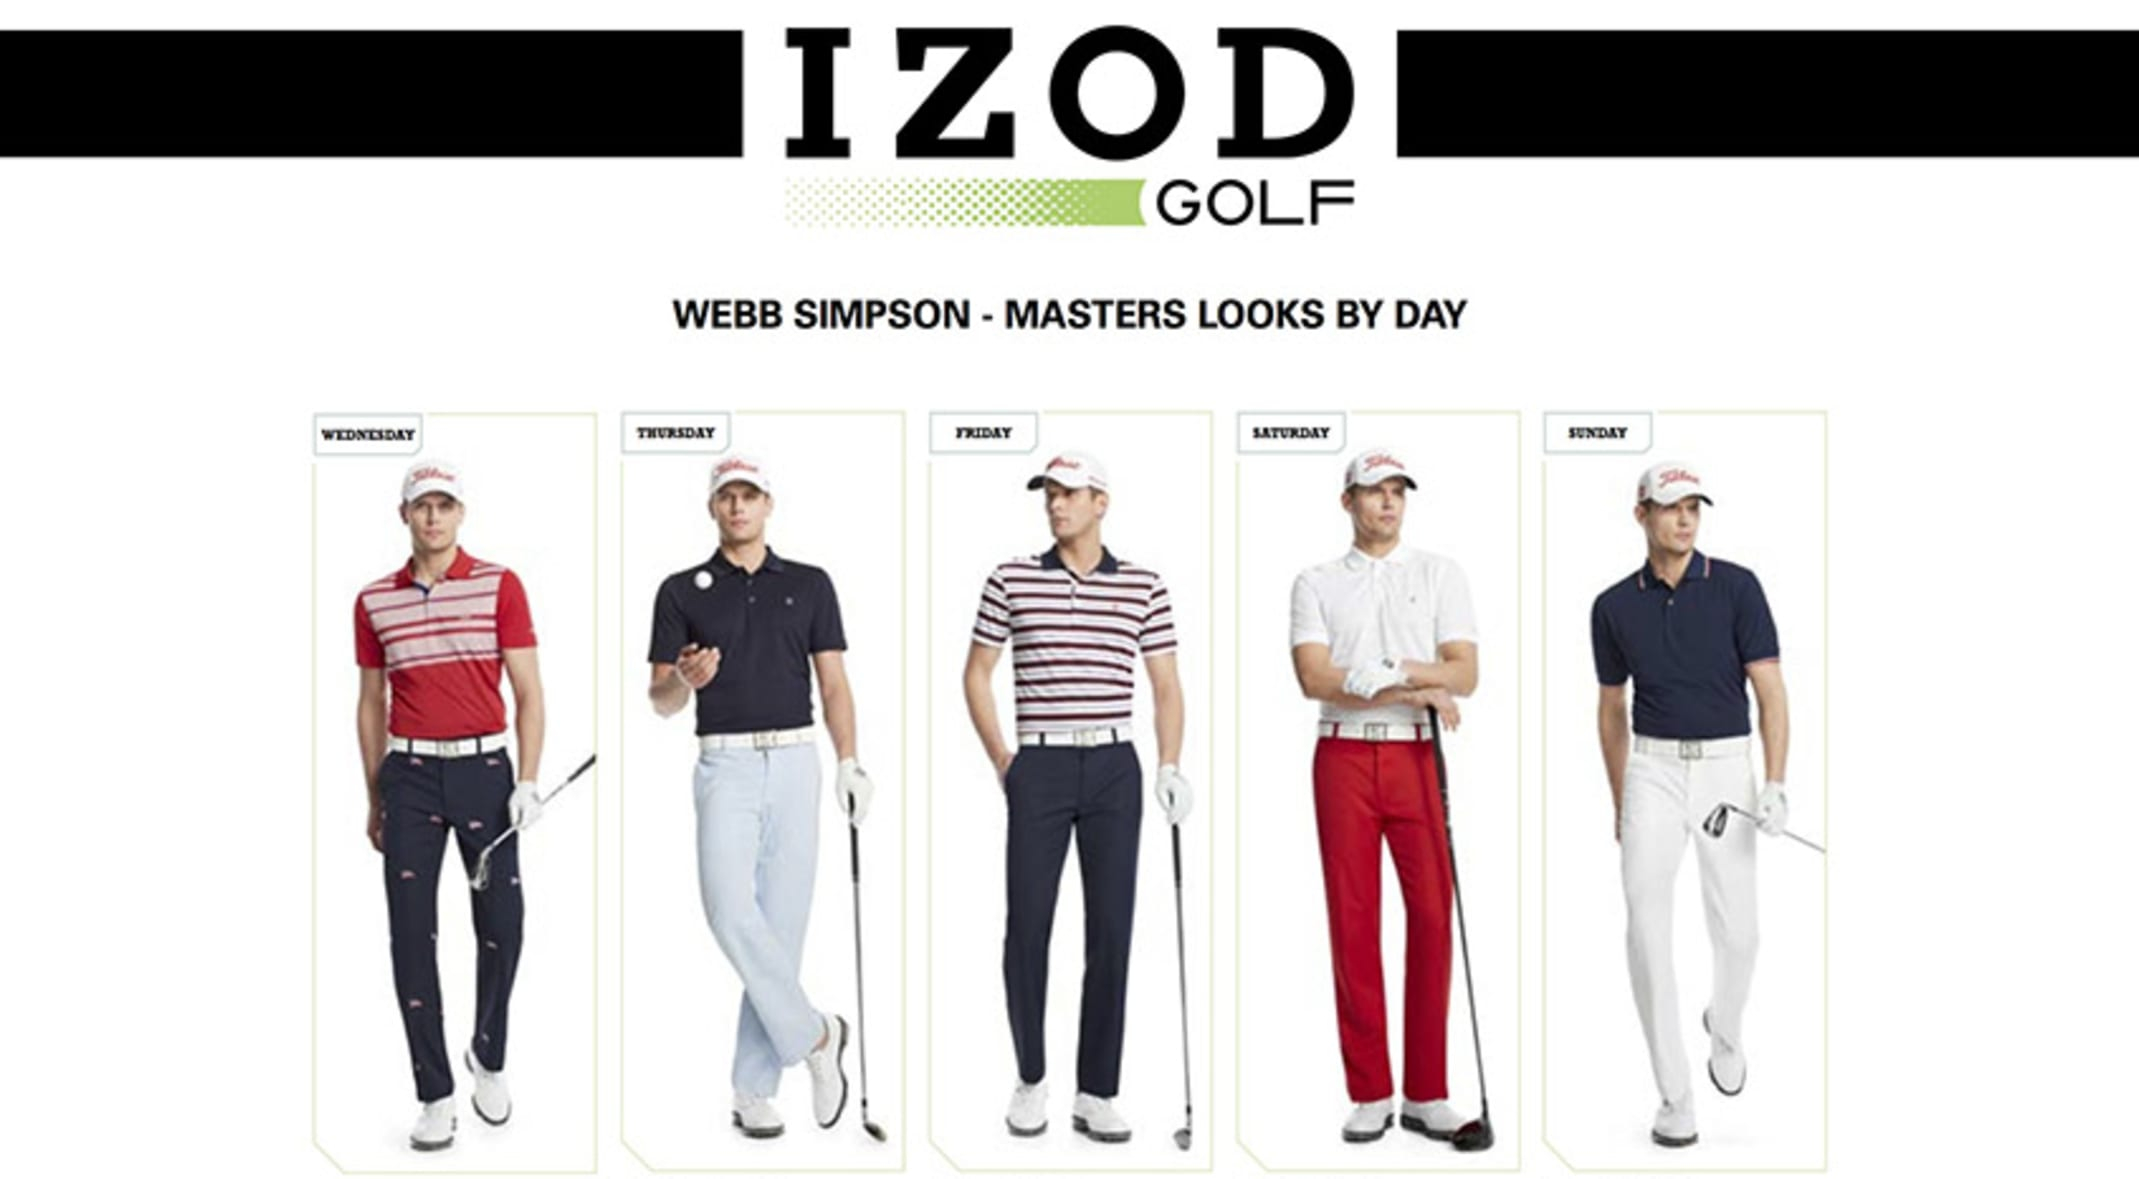 2f9edbc45 Webb Simpson's Masters apparel script features IZOD Golf's latest high tech  fabrics and classic looks (